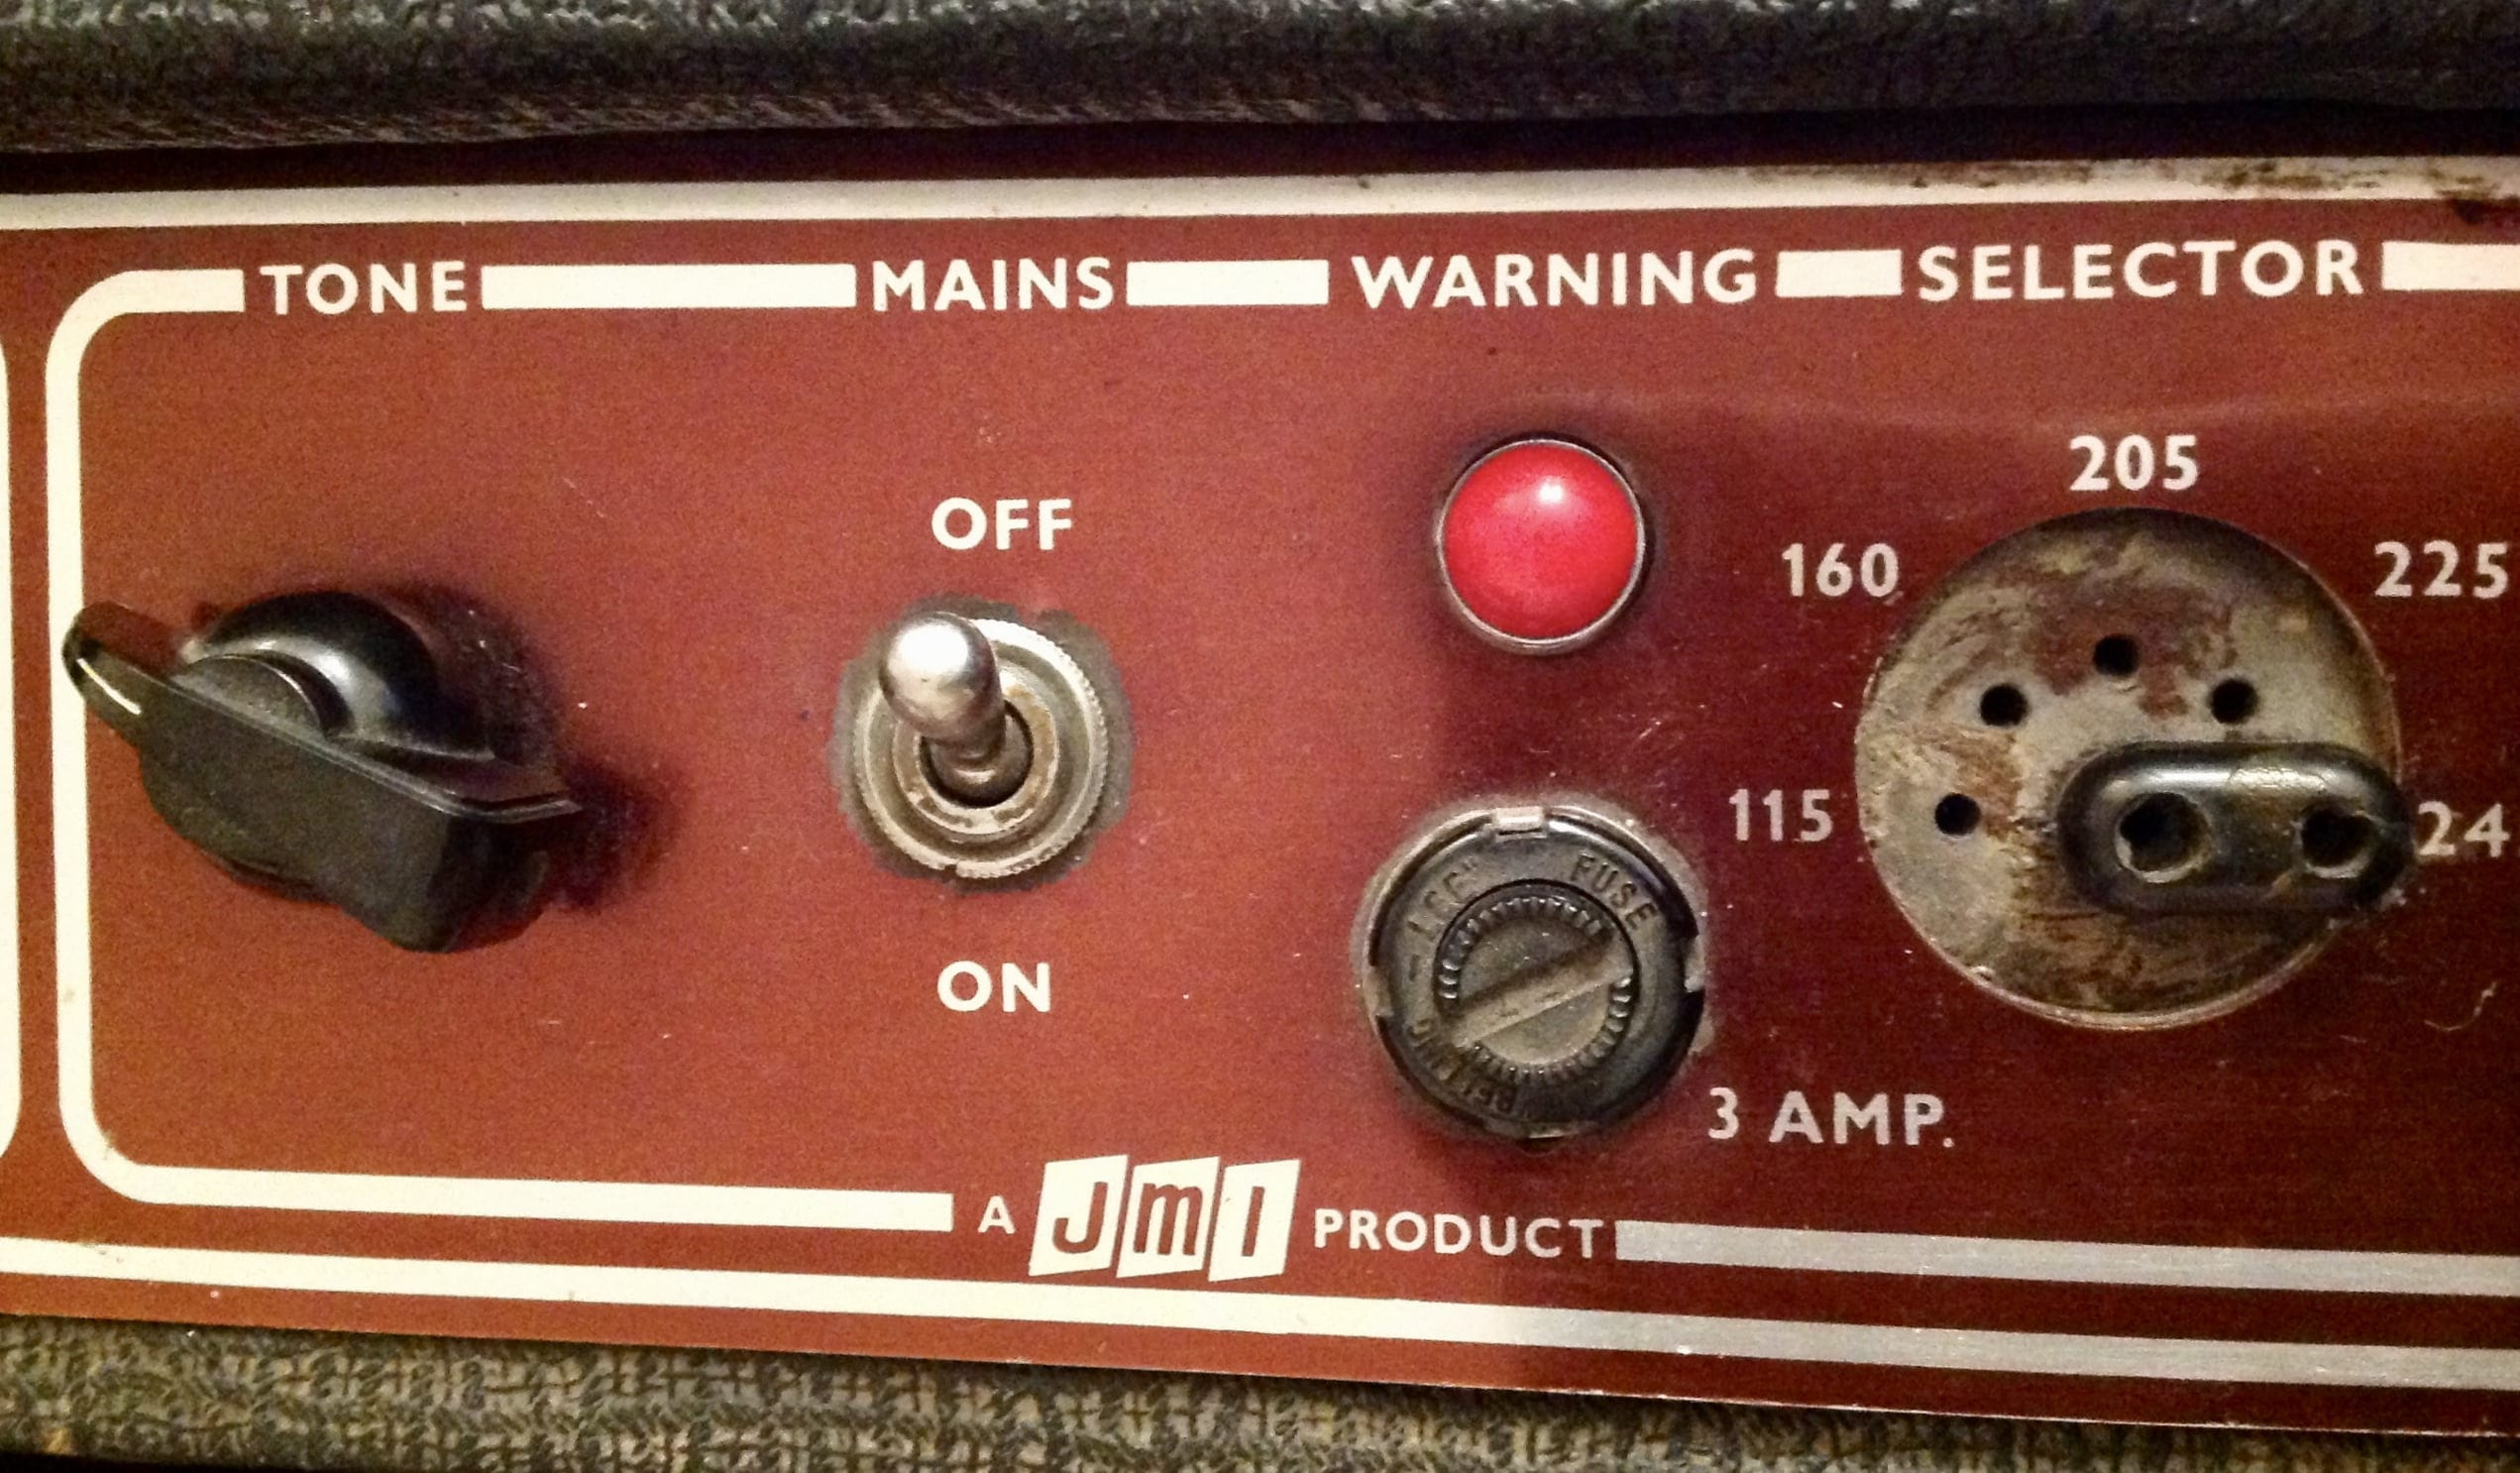 Vox AC30/6 Top panel mains selector image